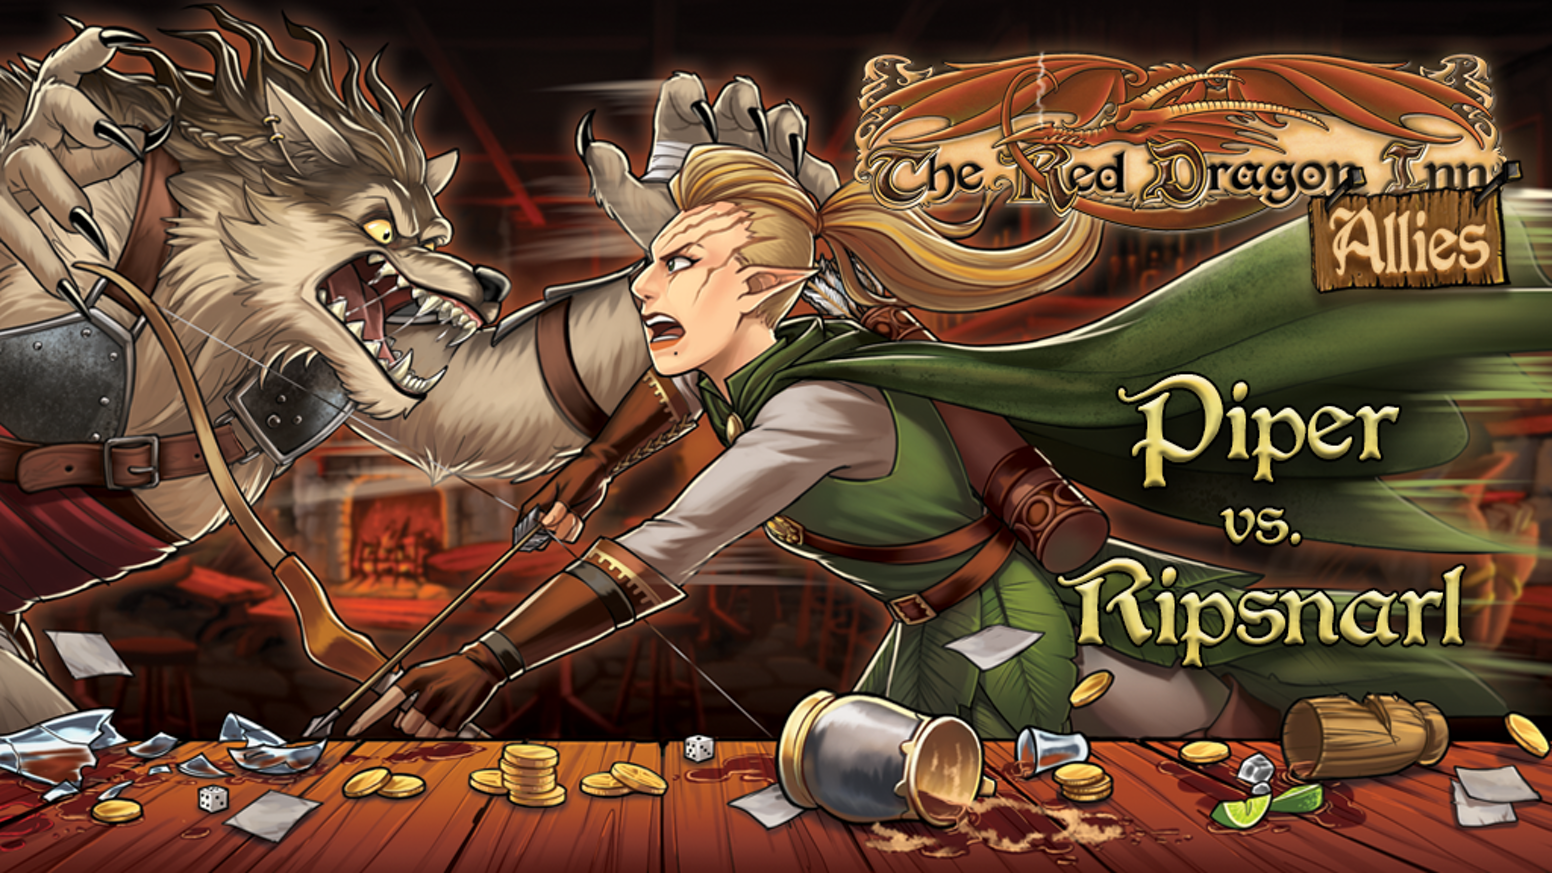 Two new mortal enemies join the growing roster of Red Dragon Inn characters!